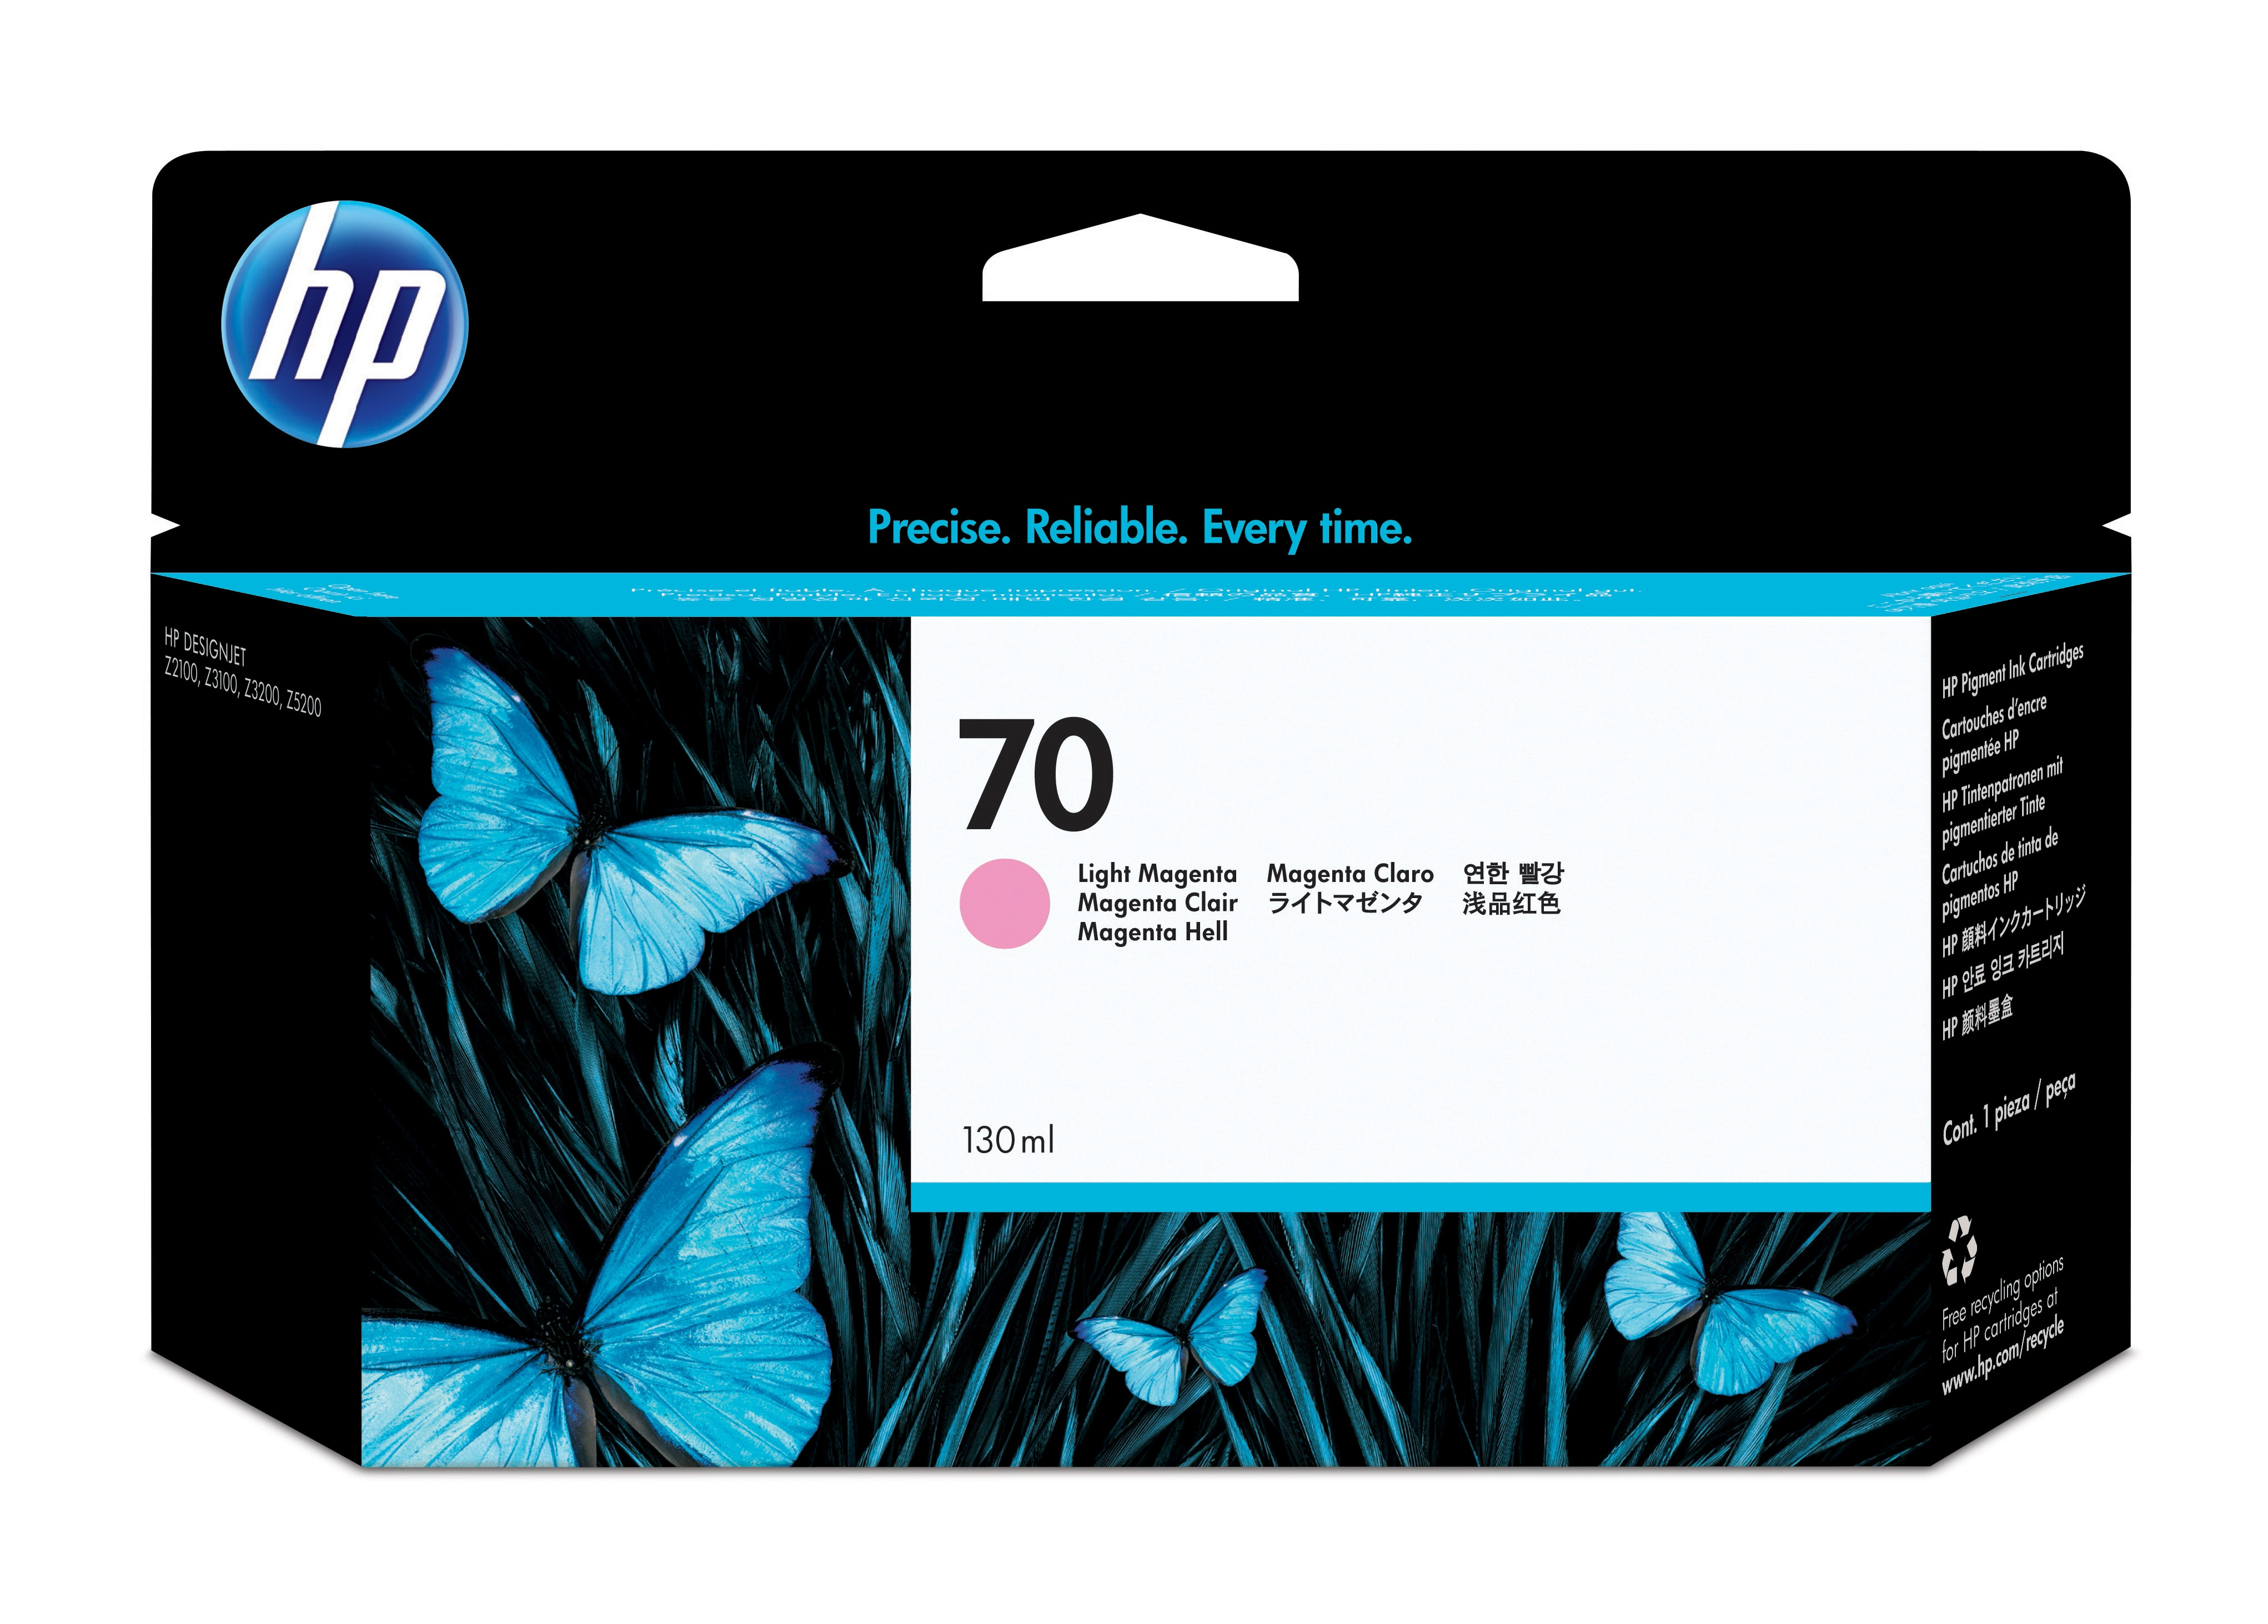 HP No. 70 Ink Cartridge Light Magenta - 130ml C9455a